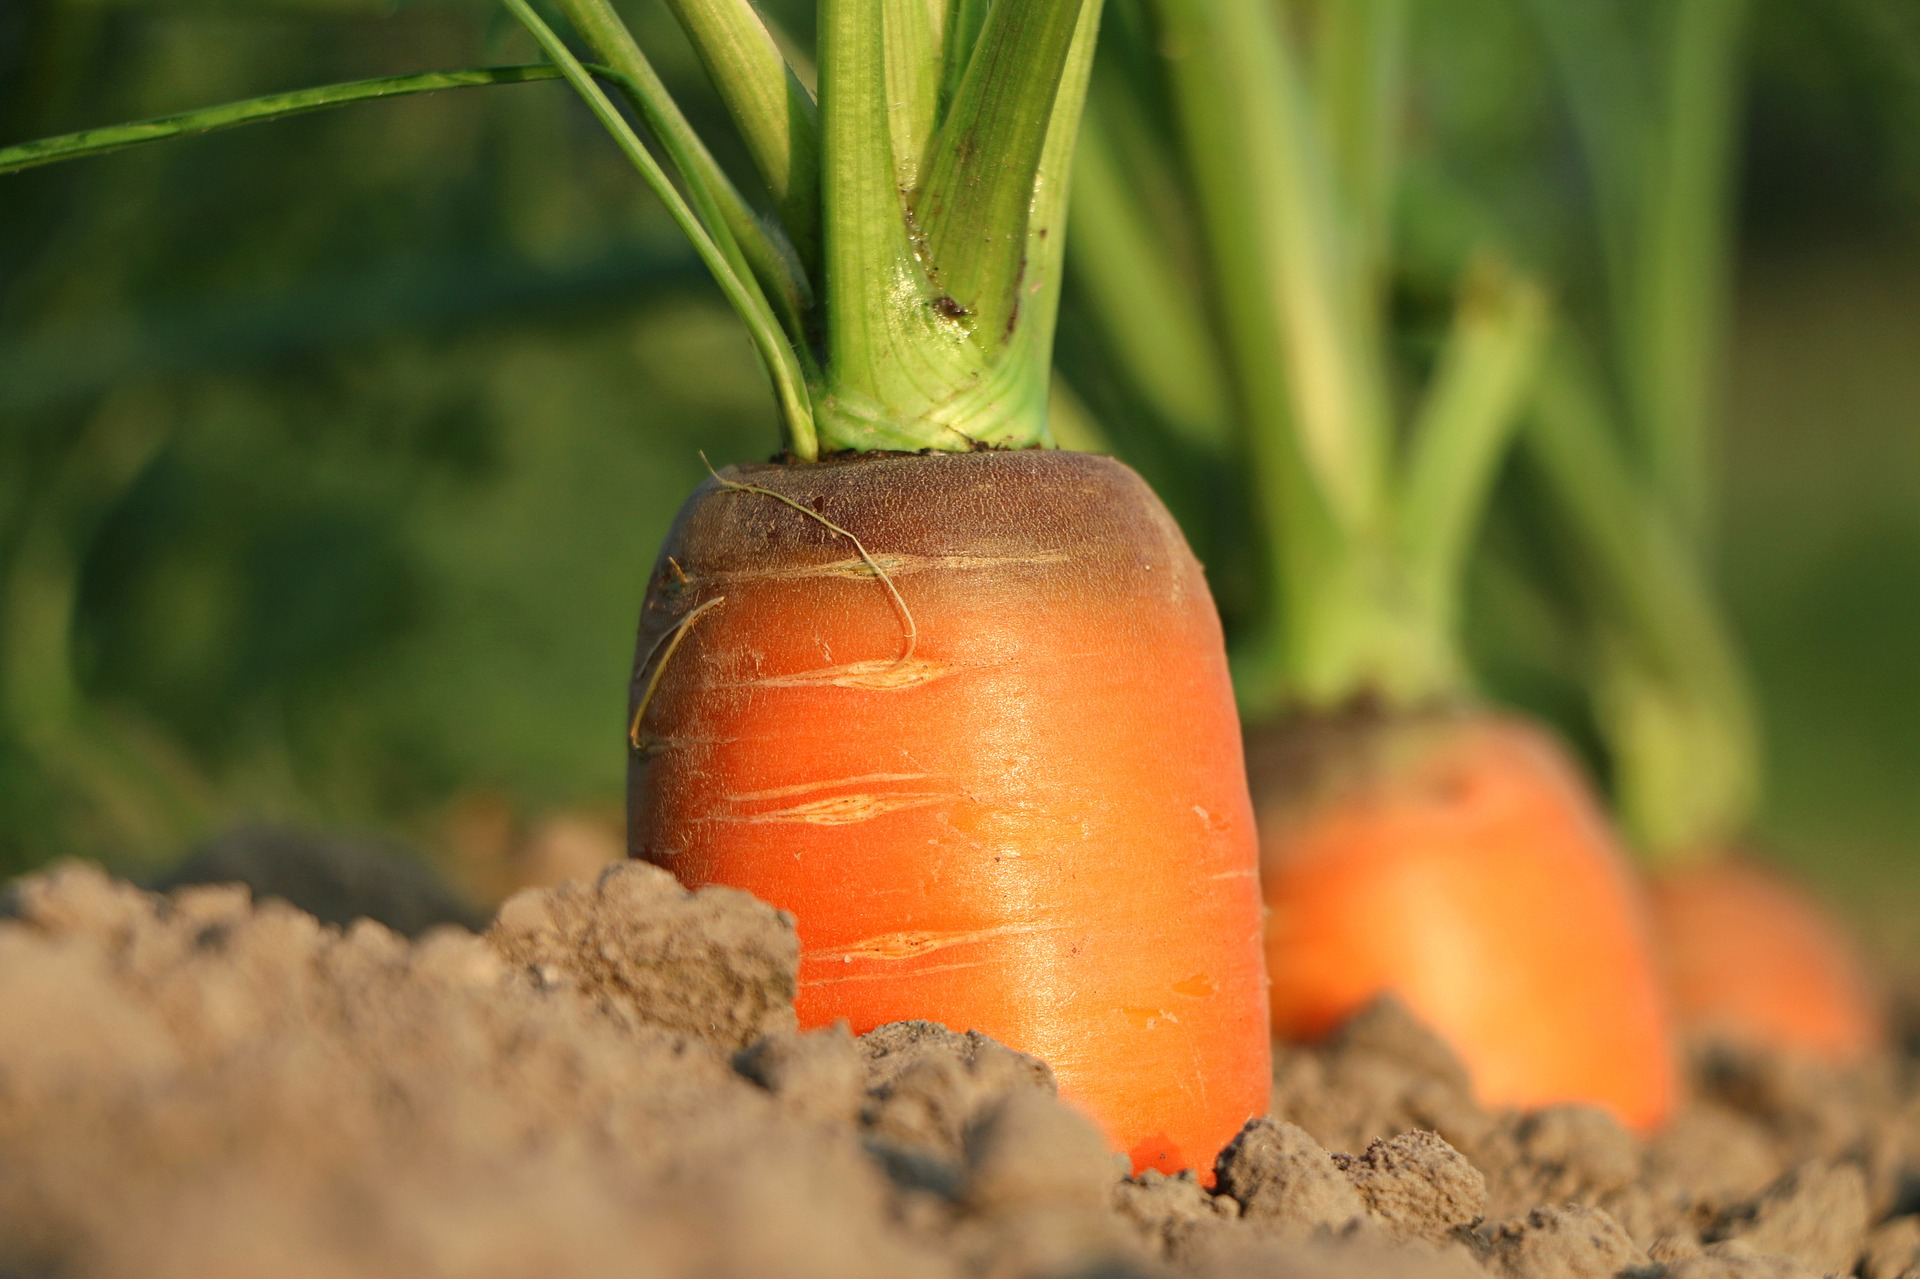 Carrots Growing